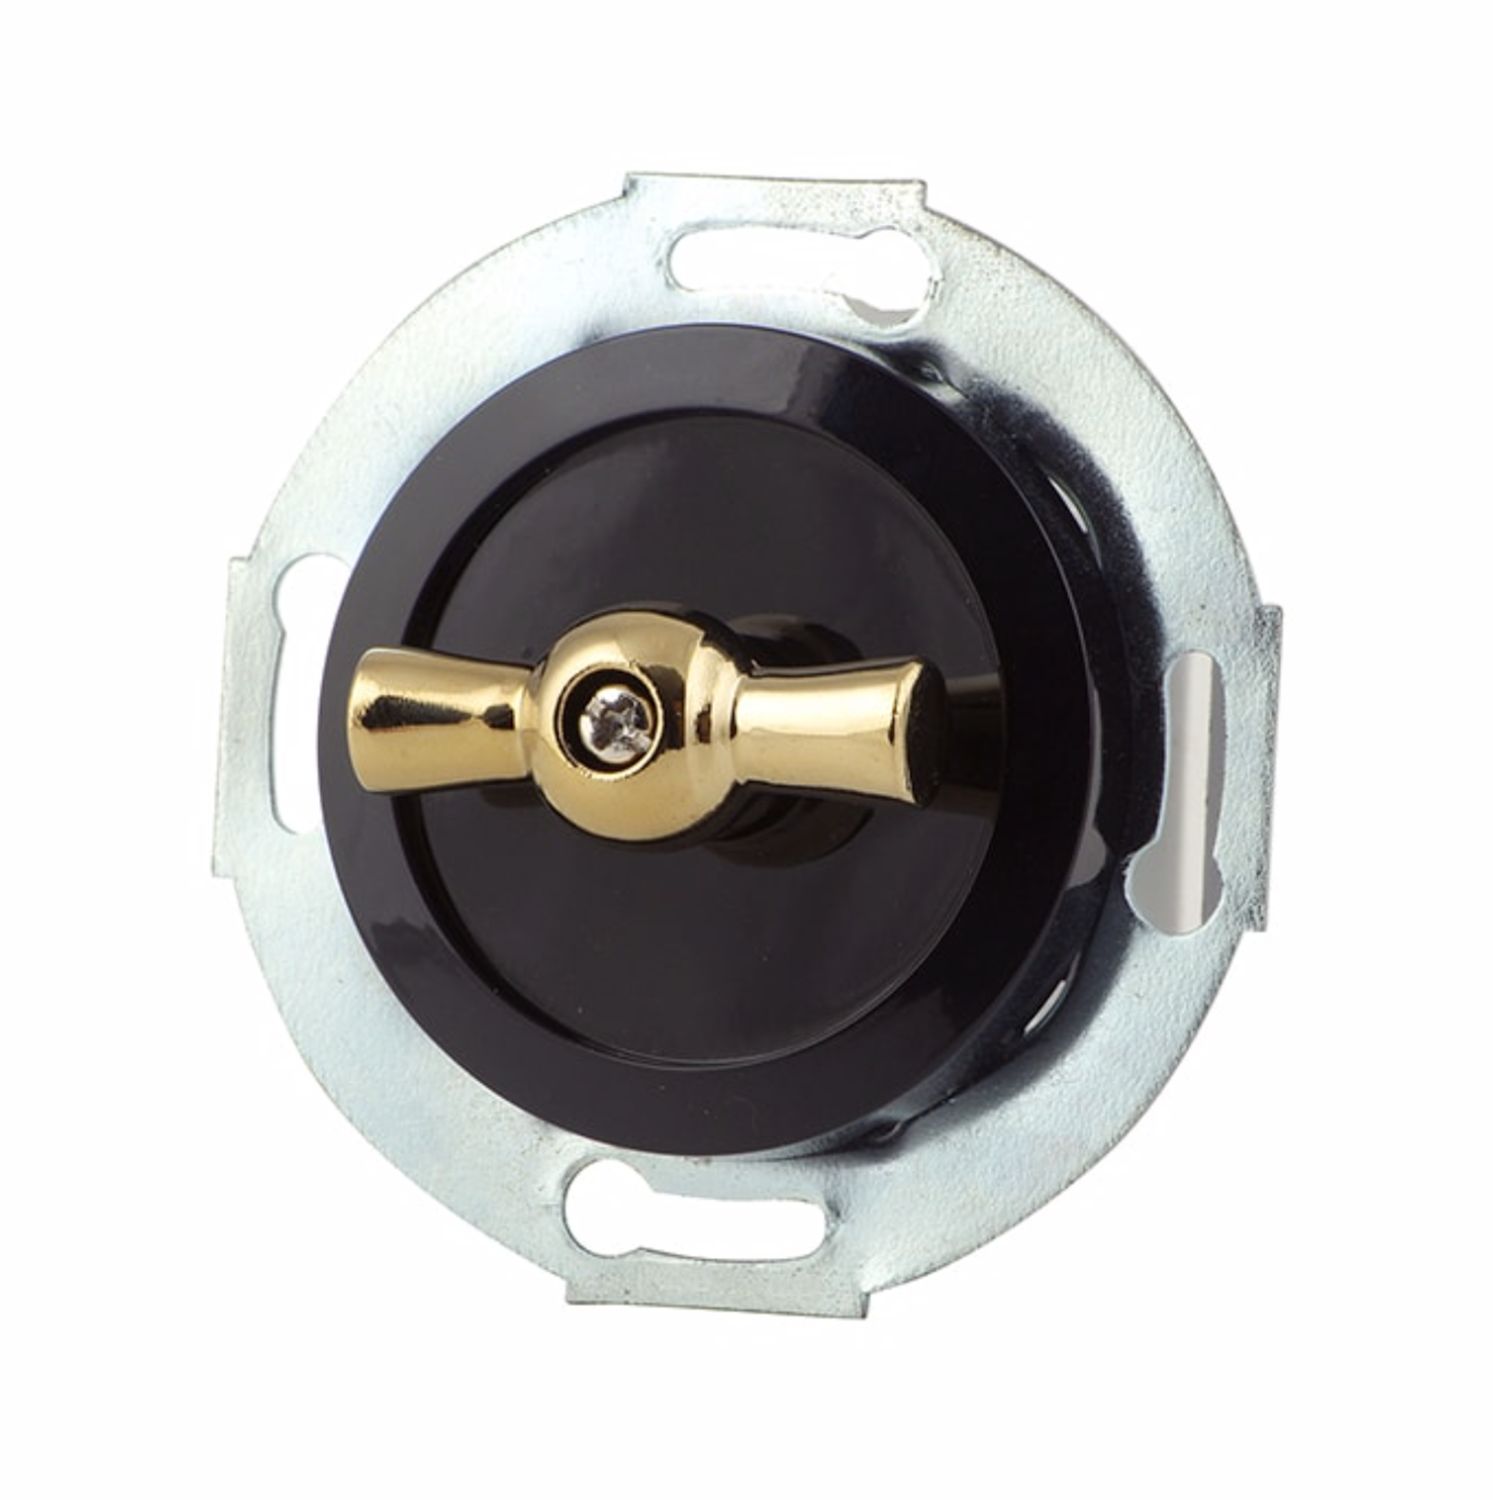 Black rotary switch, bronze handle